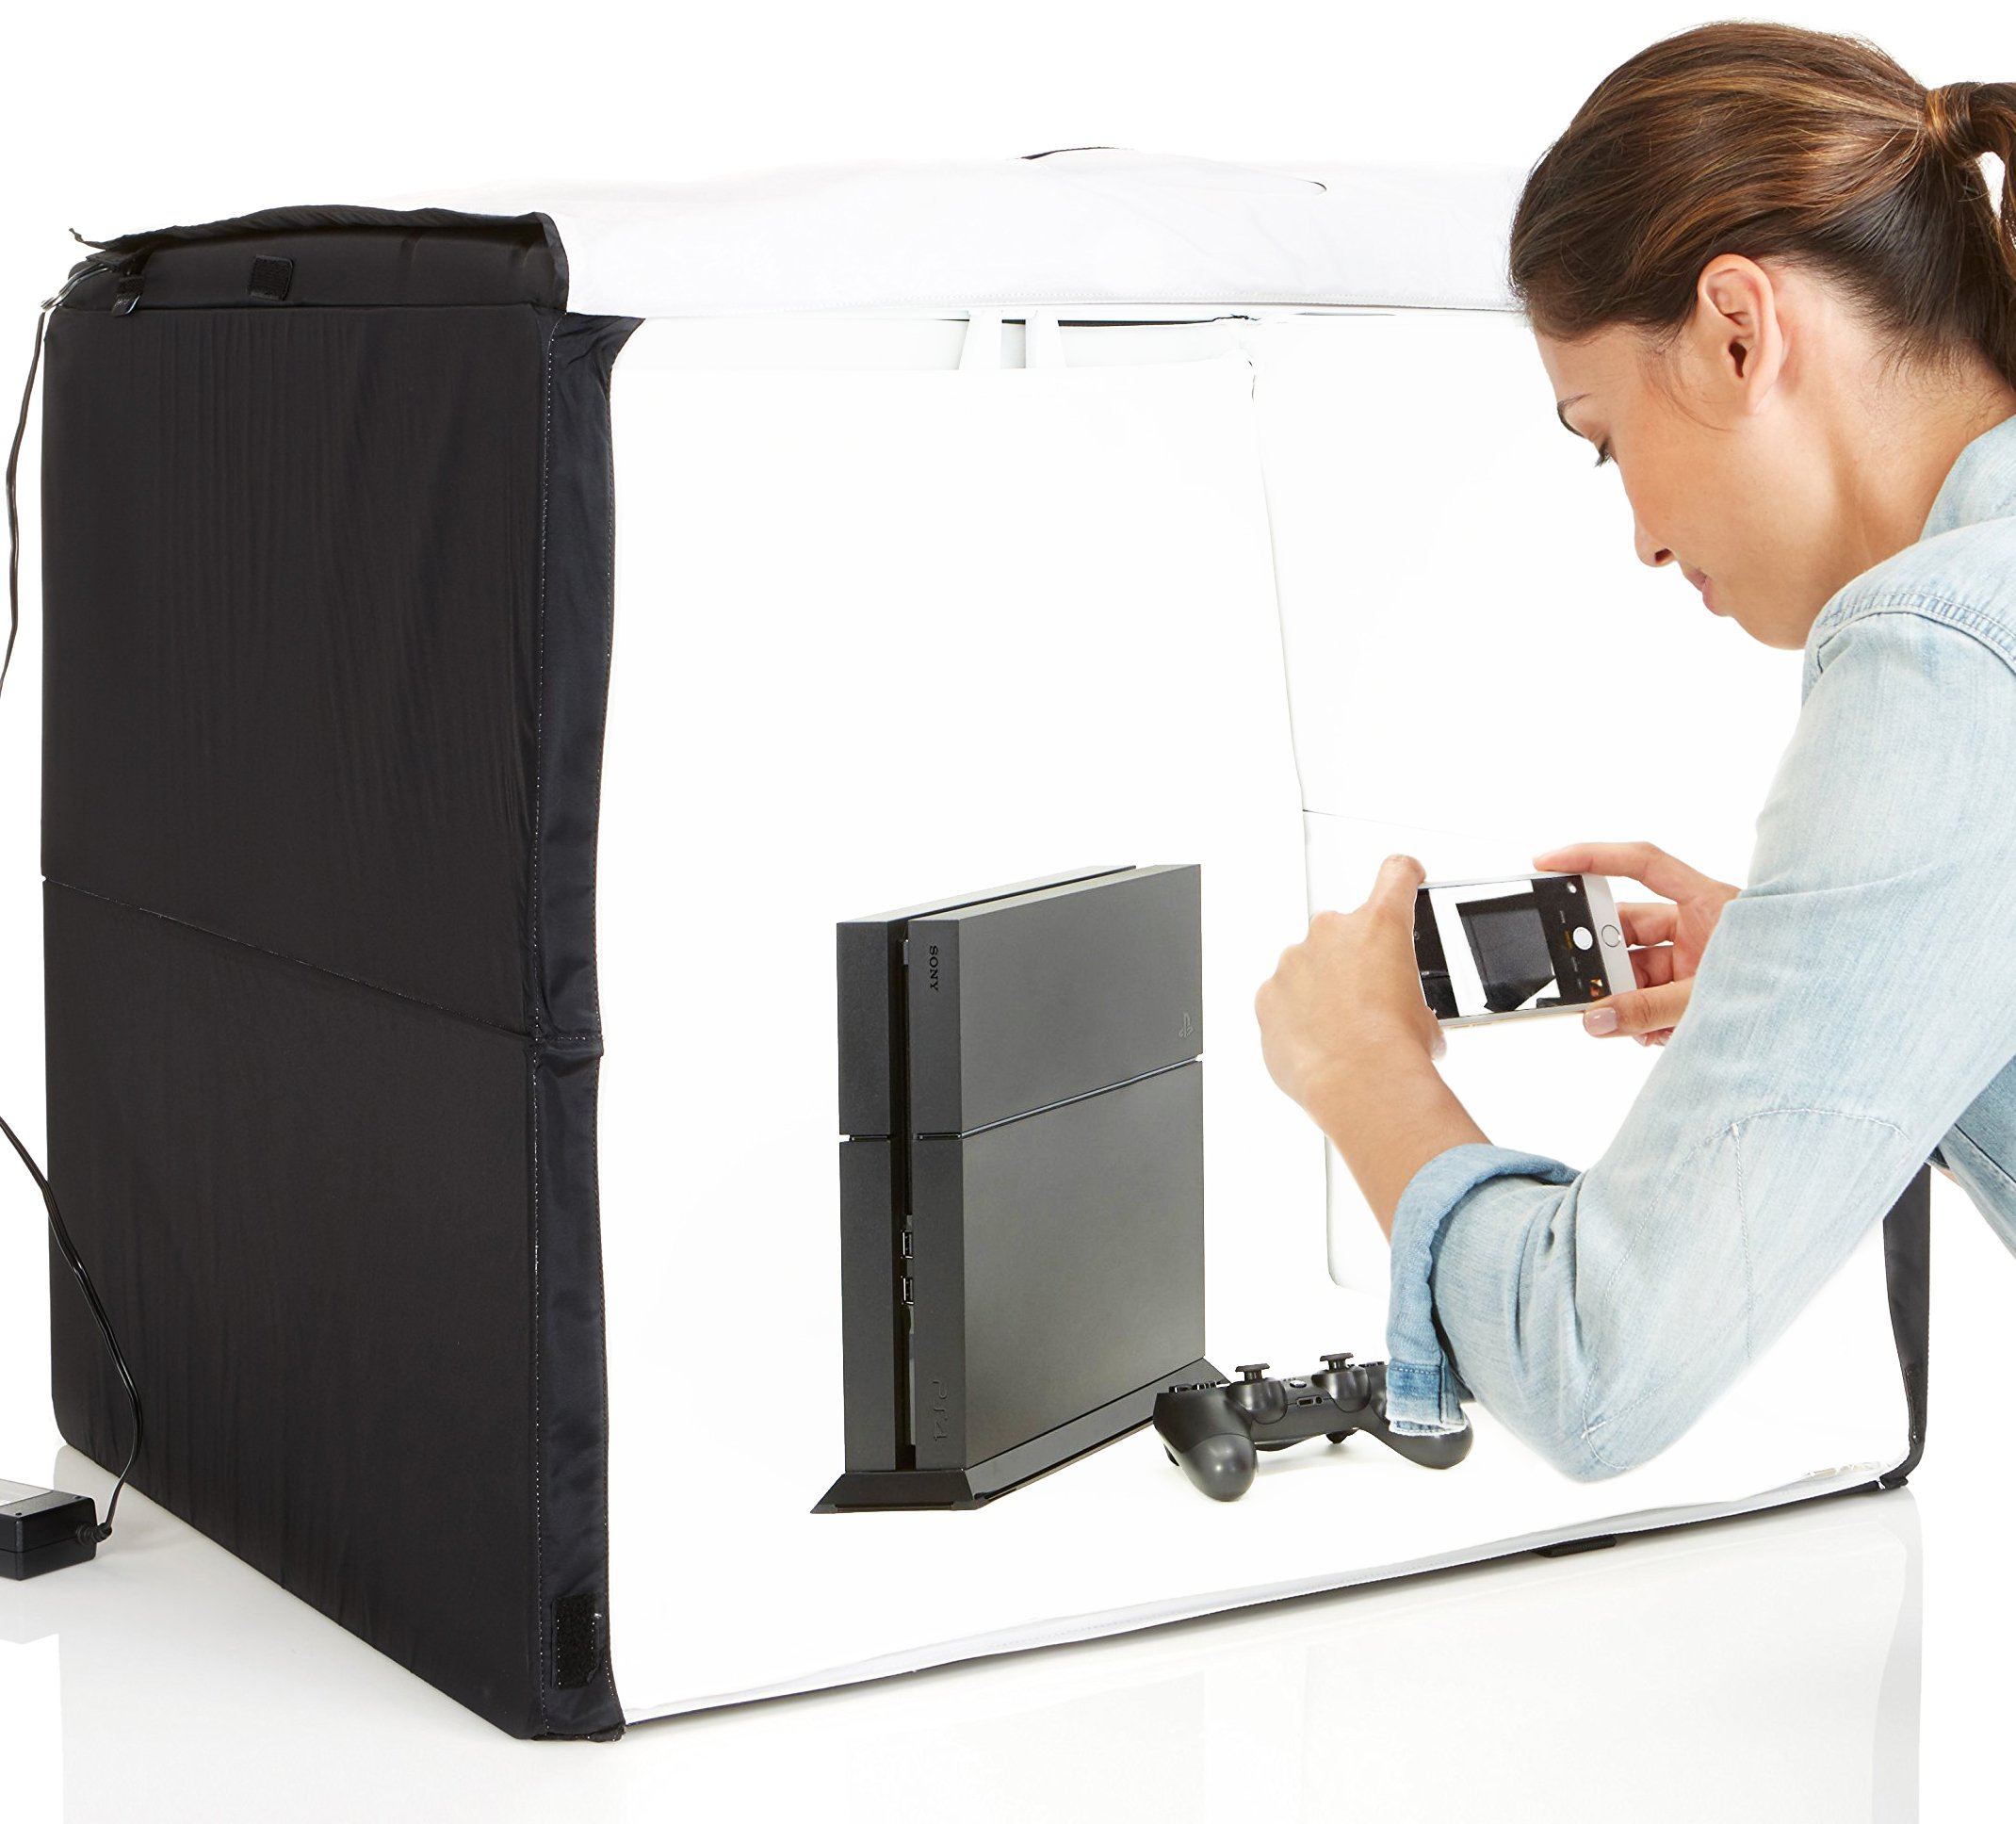 AmazonBasics Portable Foldable Photo Studio Box with LED Light - 25 x 30 x 25 Inches by AmazonBasics